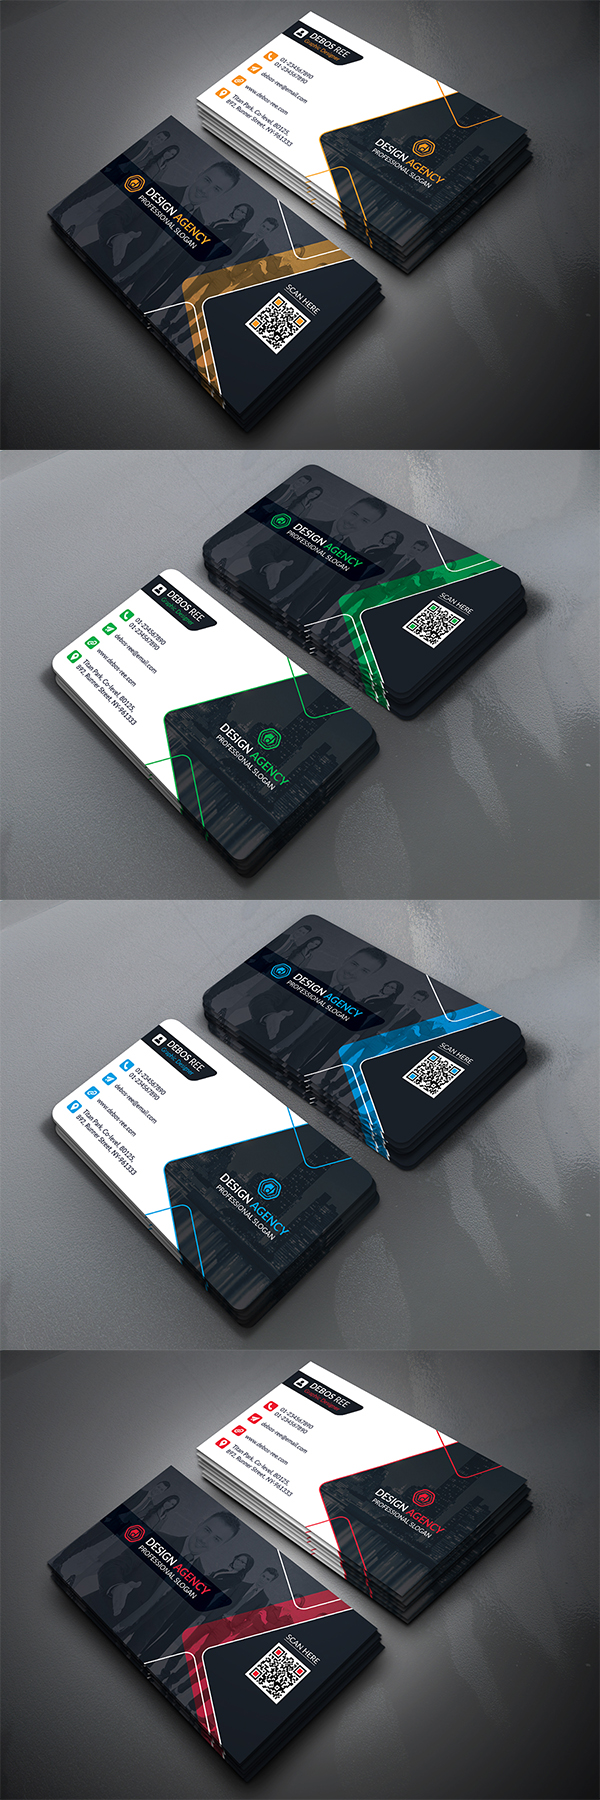 14 Business Card Design